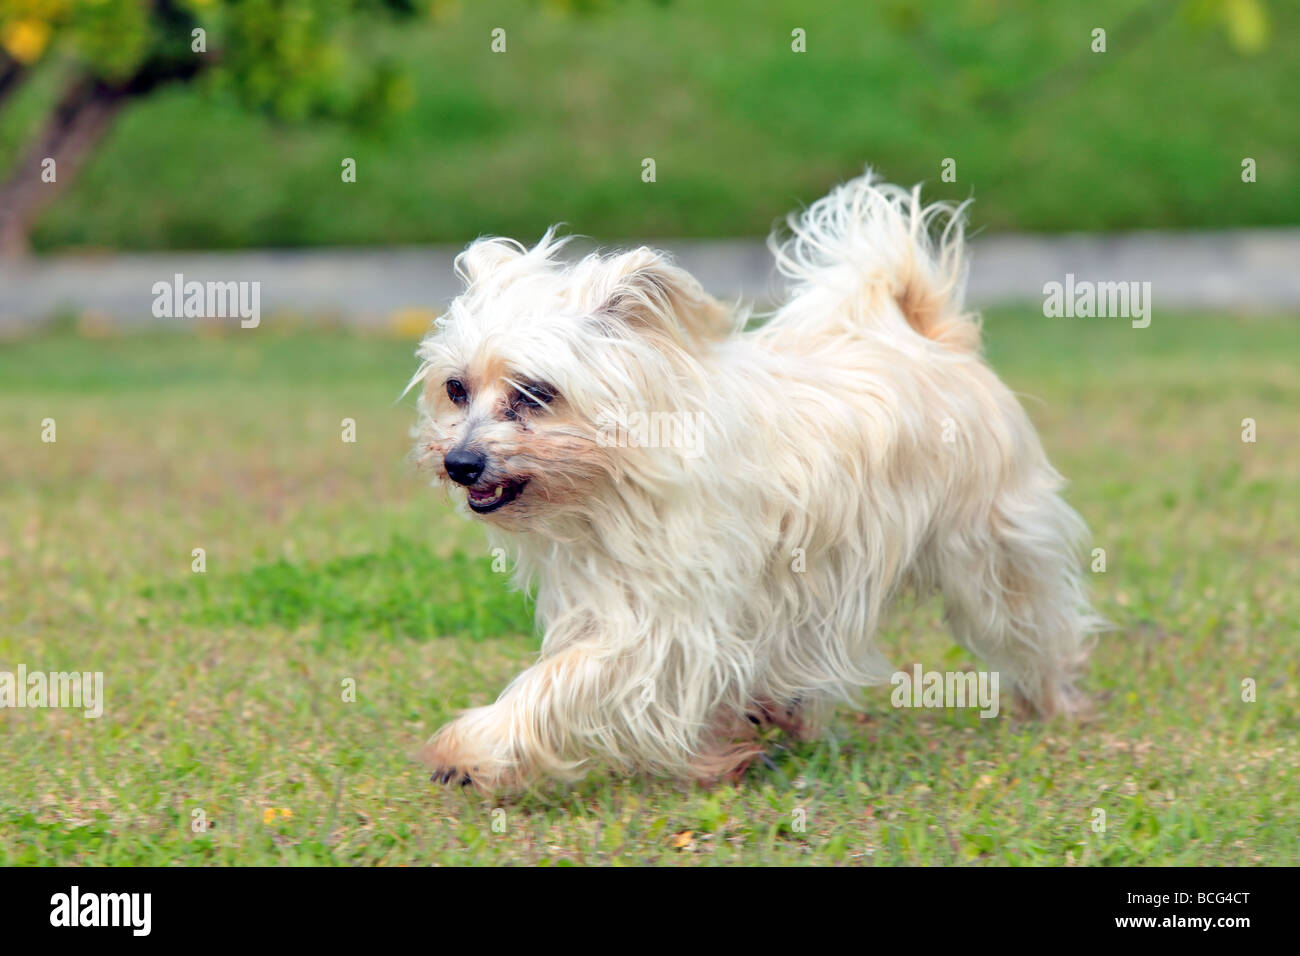 small Australian silky terrier dog at play - Stock Image